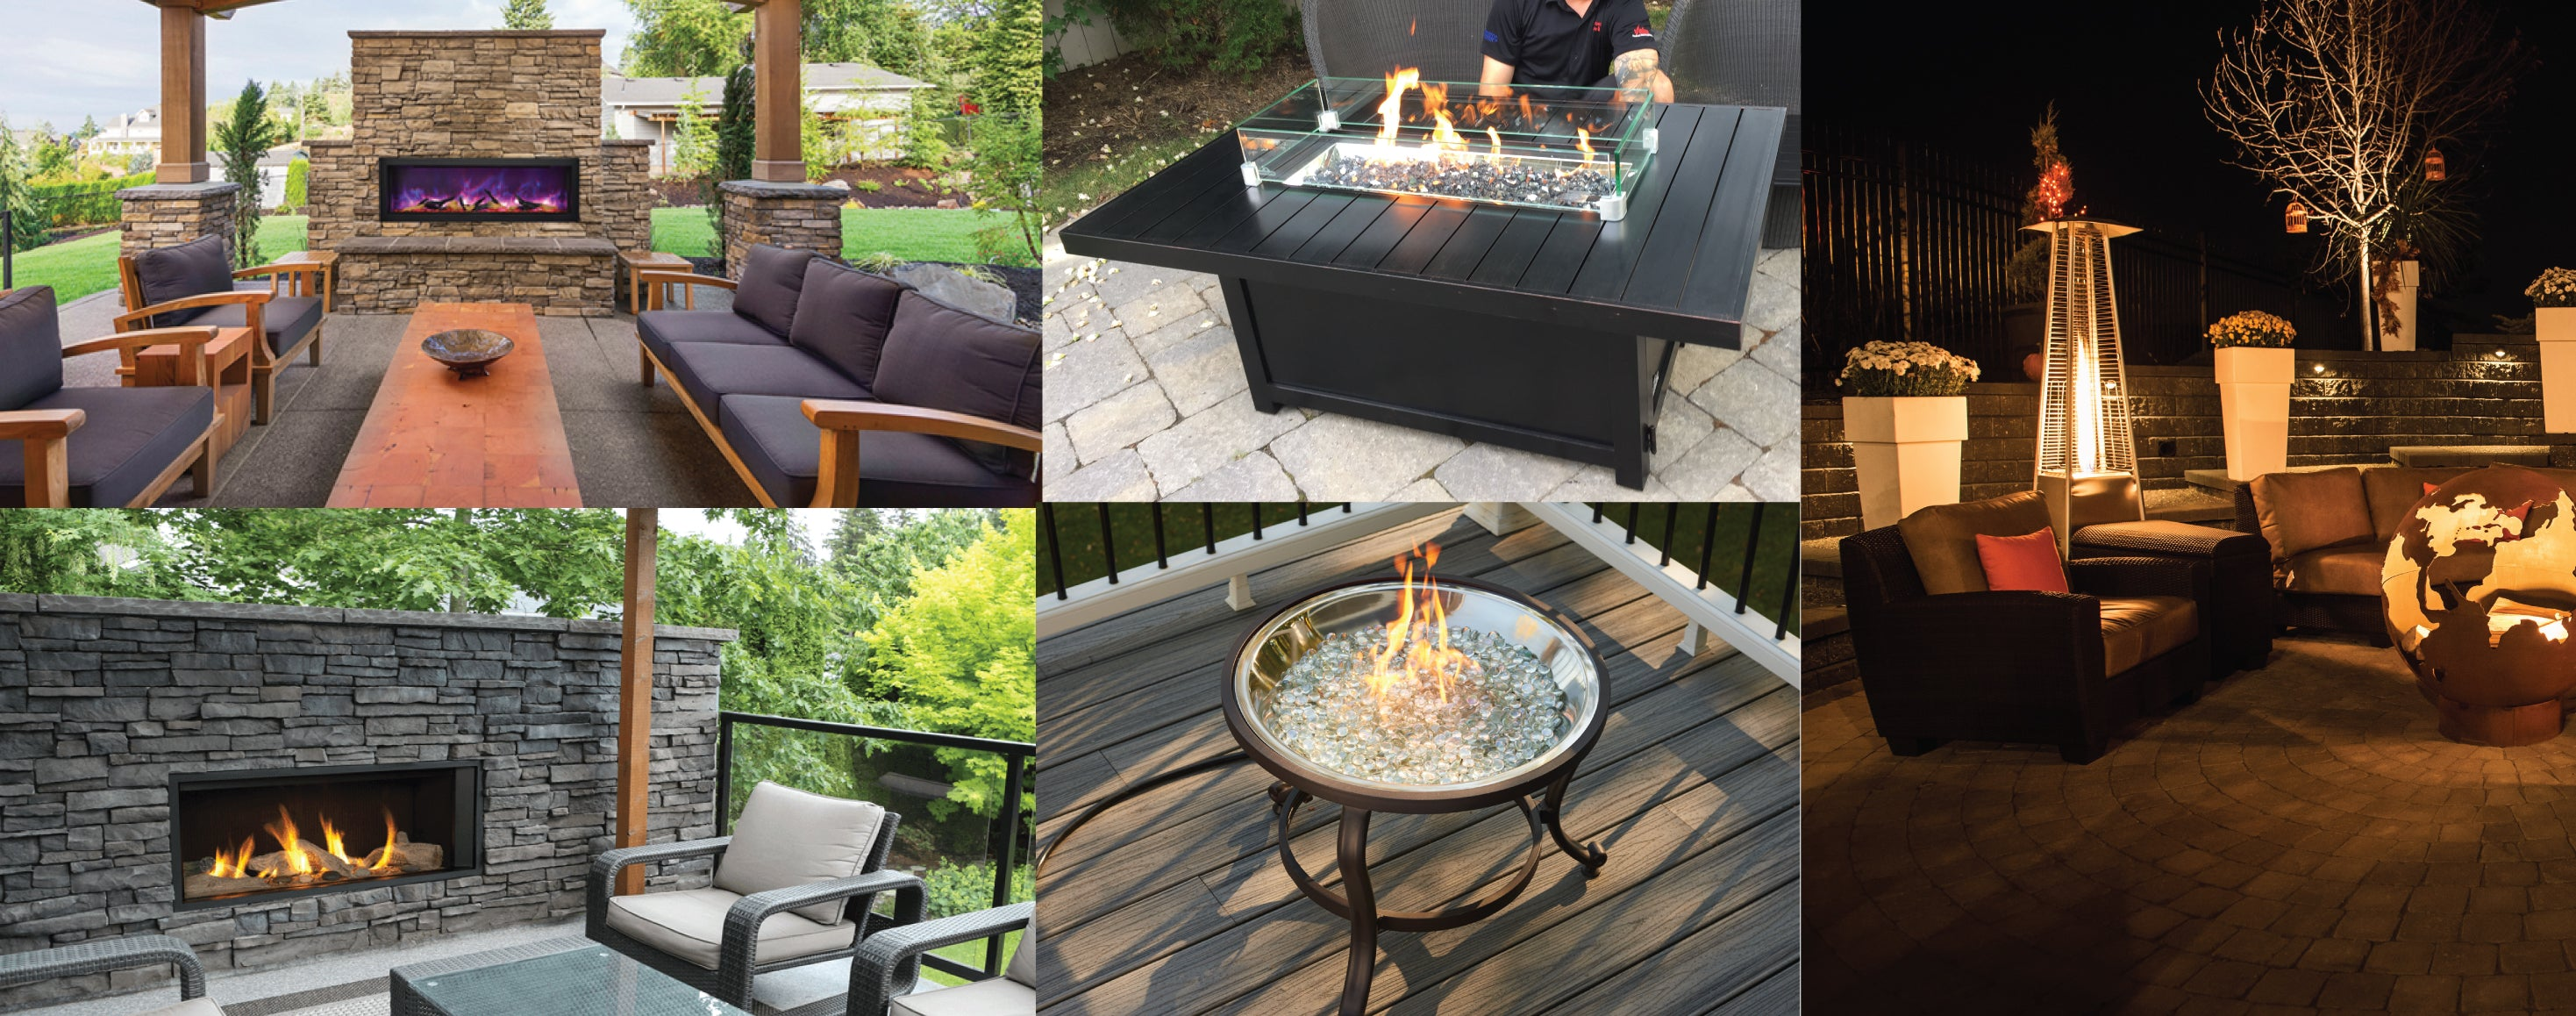 Different patio setups in various backyards